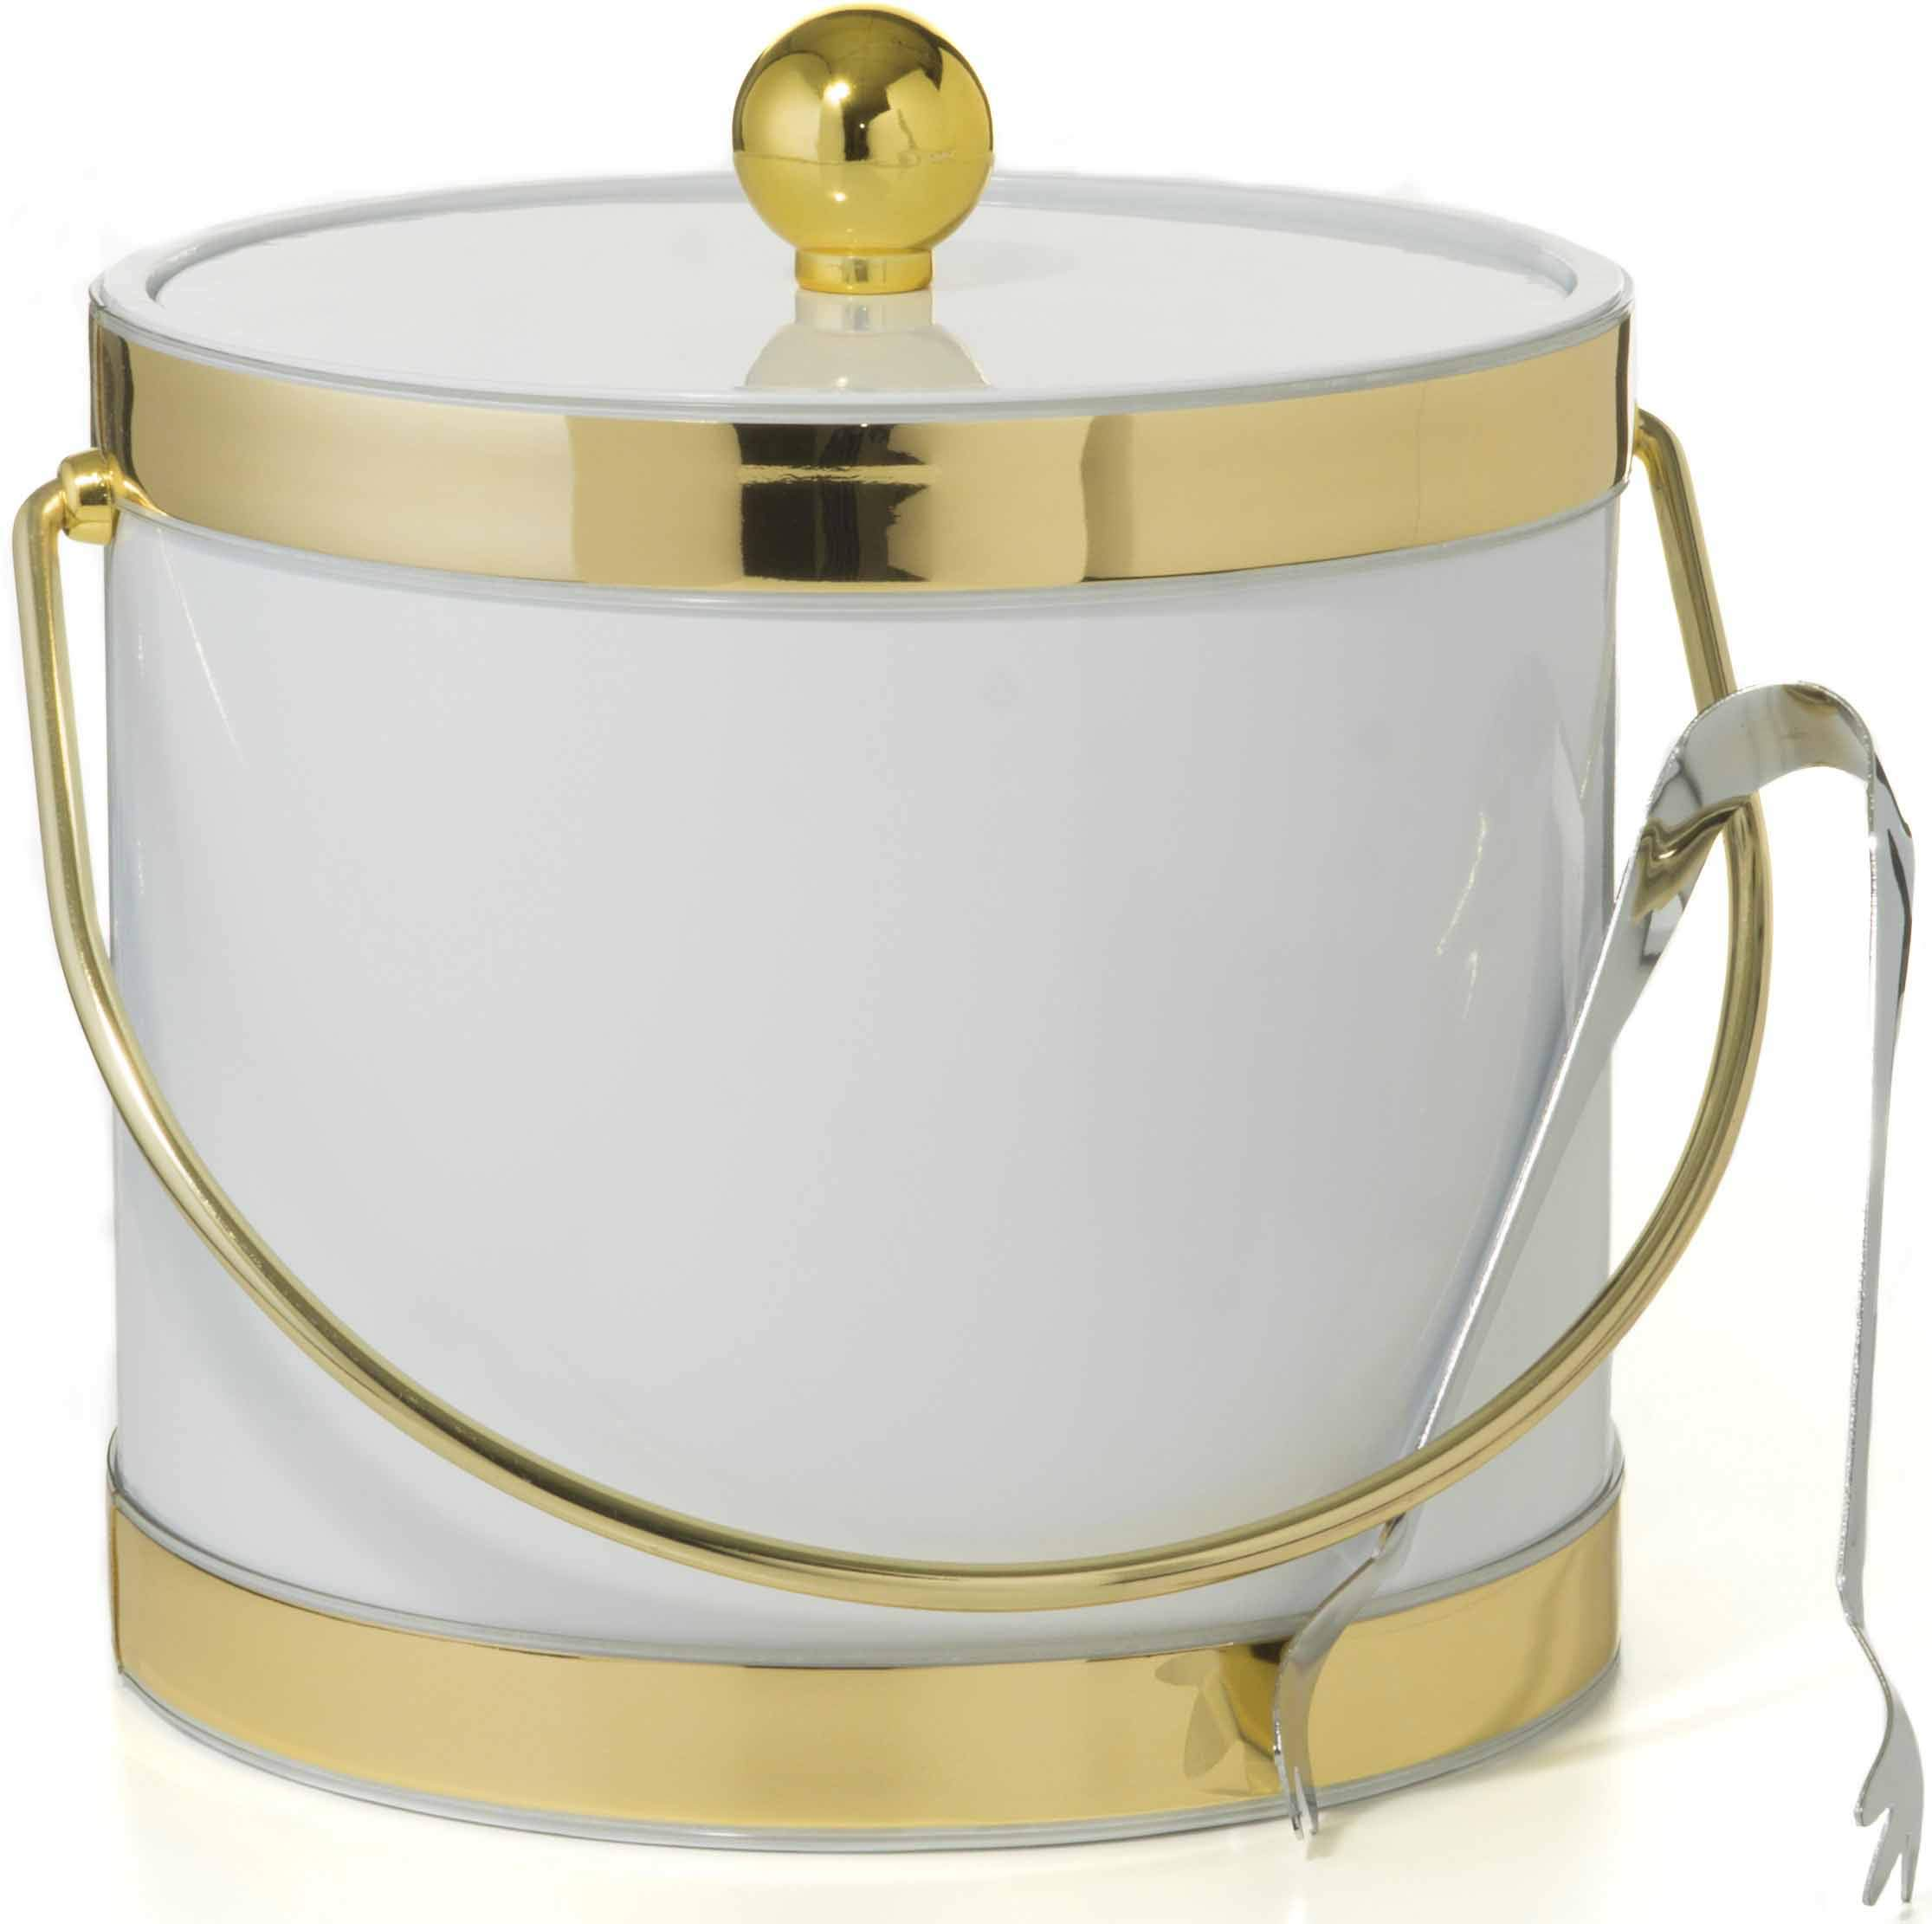 Hand Made In USA White With Dual Gold Bands Double Walled 3-Quart Insulated Ice Bucket With Bonus Ice Tongs by Mr. Ice Bucket By Stephanie Imports